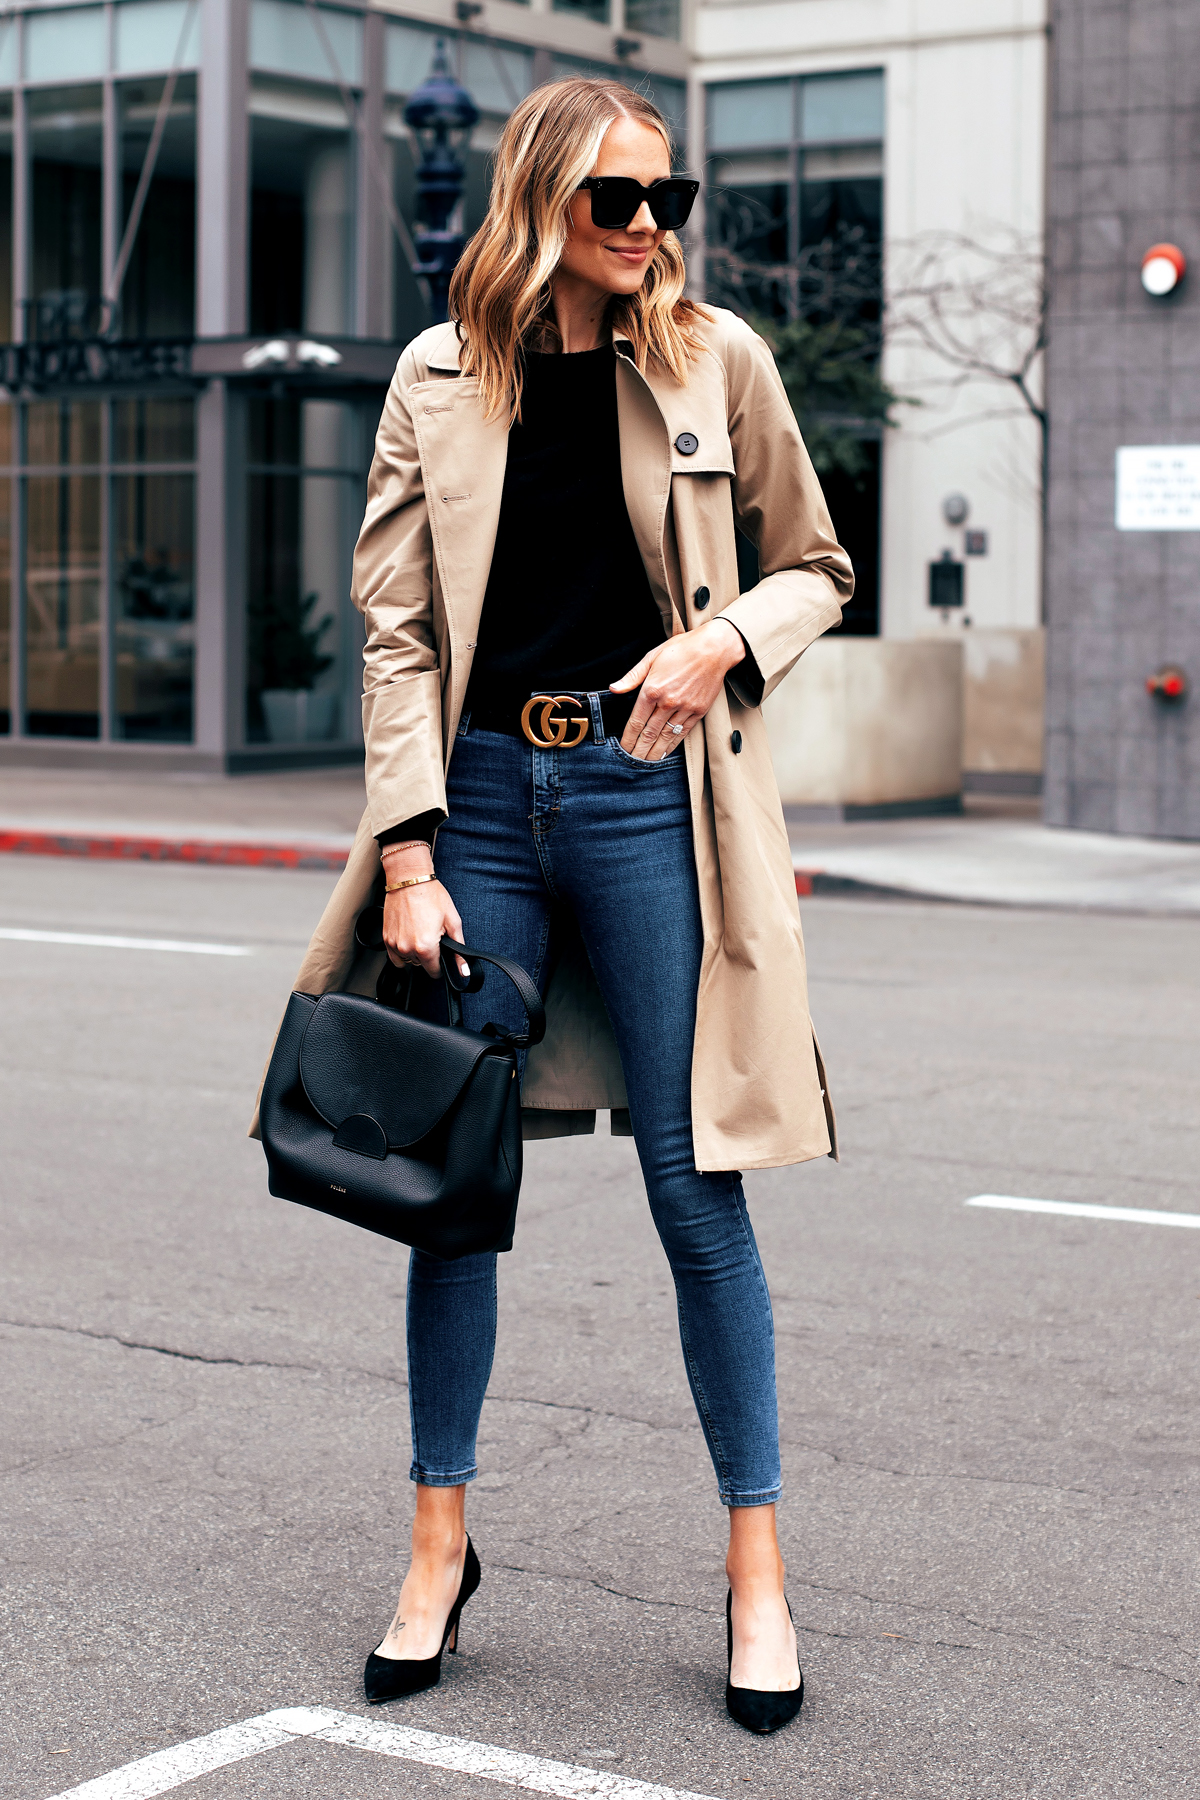 Fashion Jackson Capsule Wardrobe Wearing Everlane Trench Coat Black Sweater Topshop Denim Jamie Jeans Gucci Belt Black Pumps Polene Black Handbag